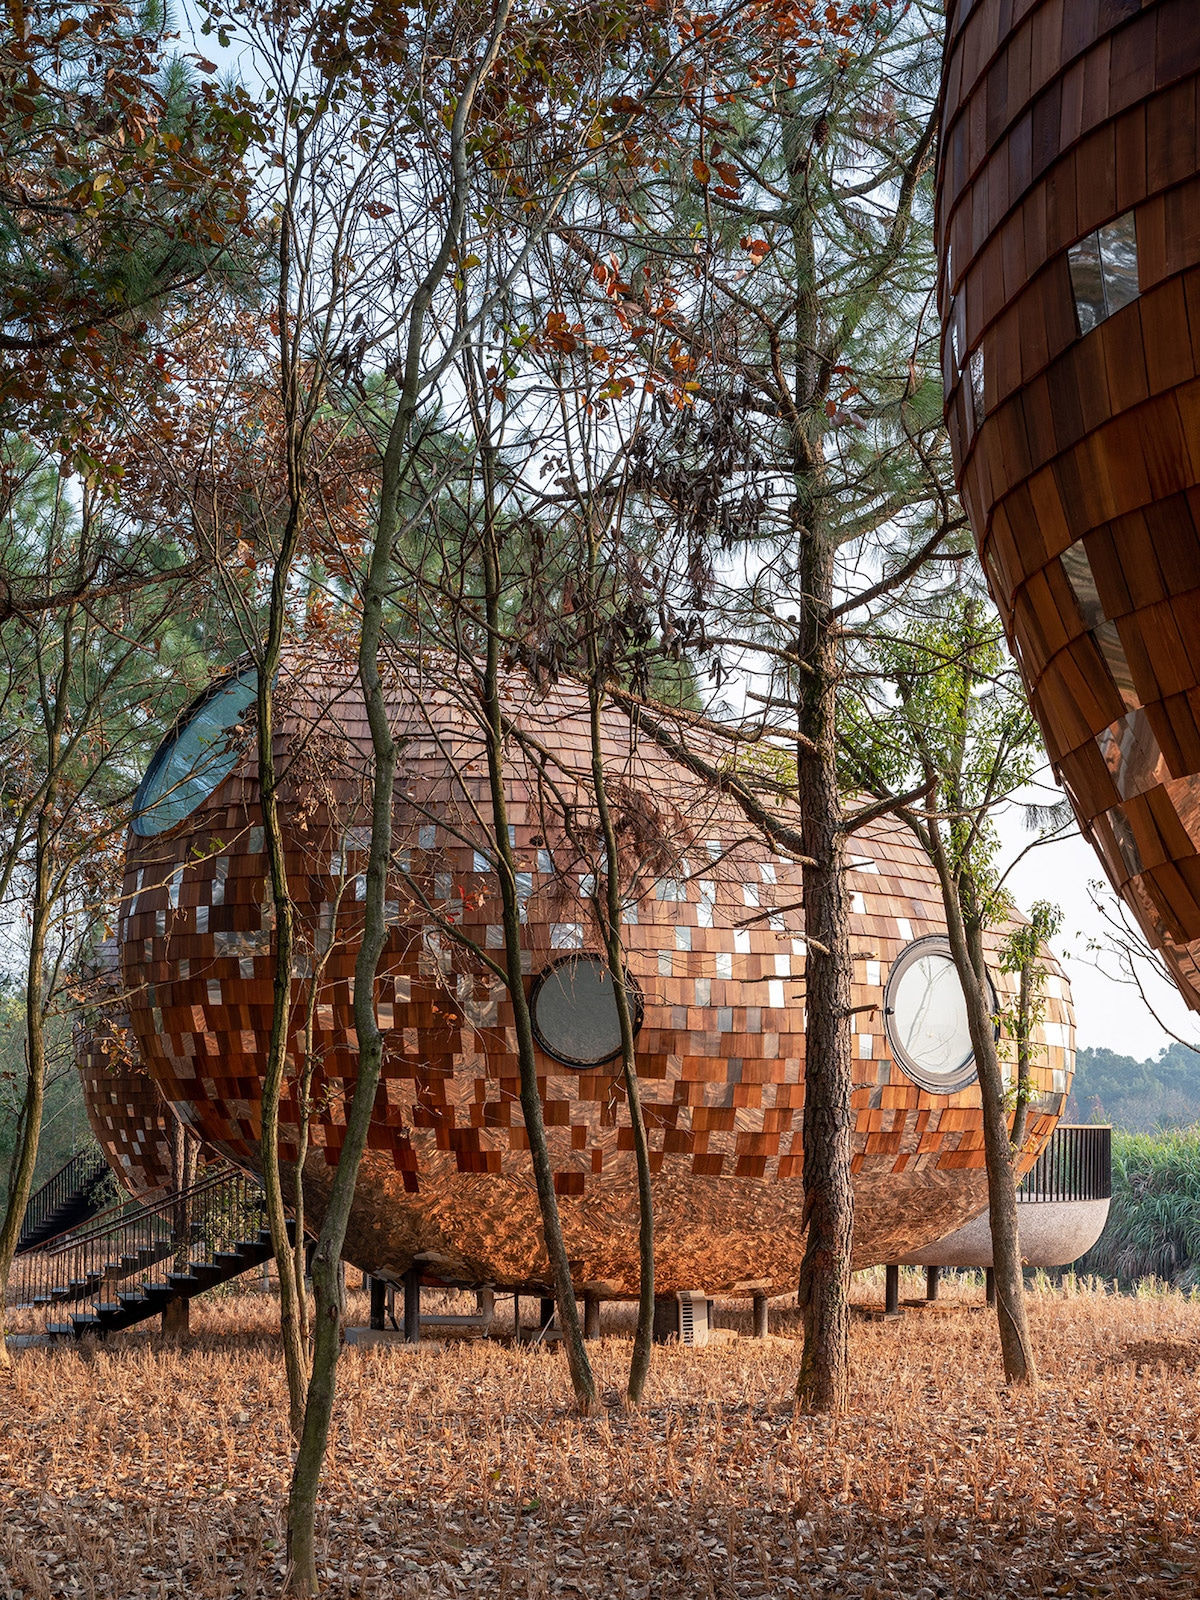 Exterior View of the Seeds Cabins in the Forests of Jiangxi